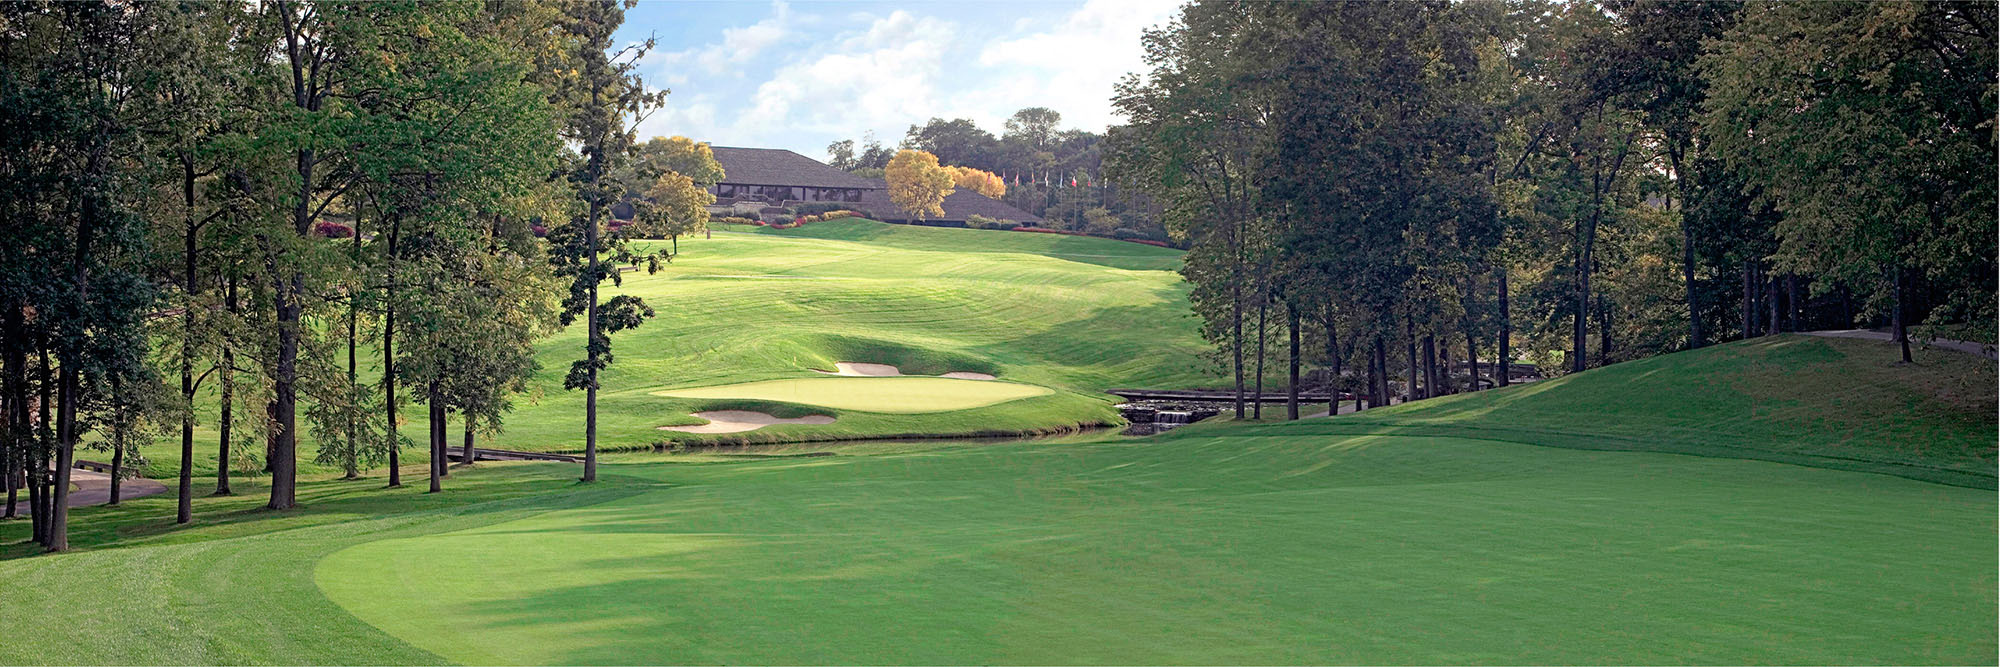 Golf Course Image - Muirfield Village No. 9